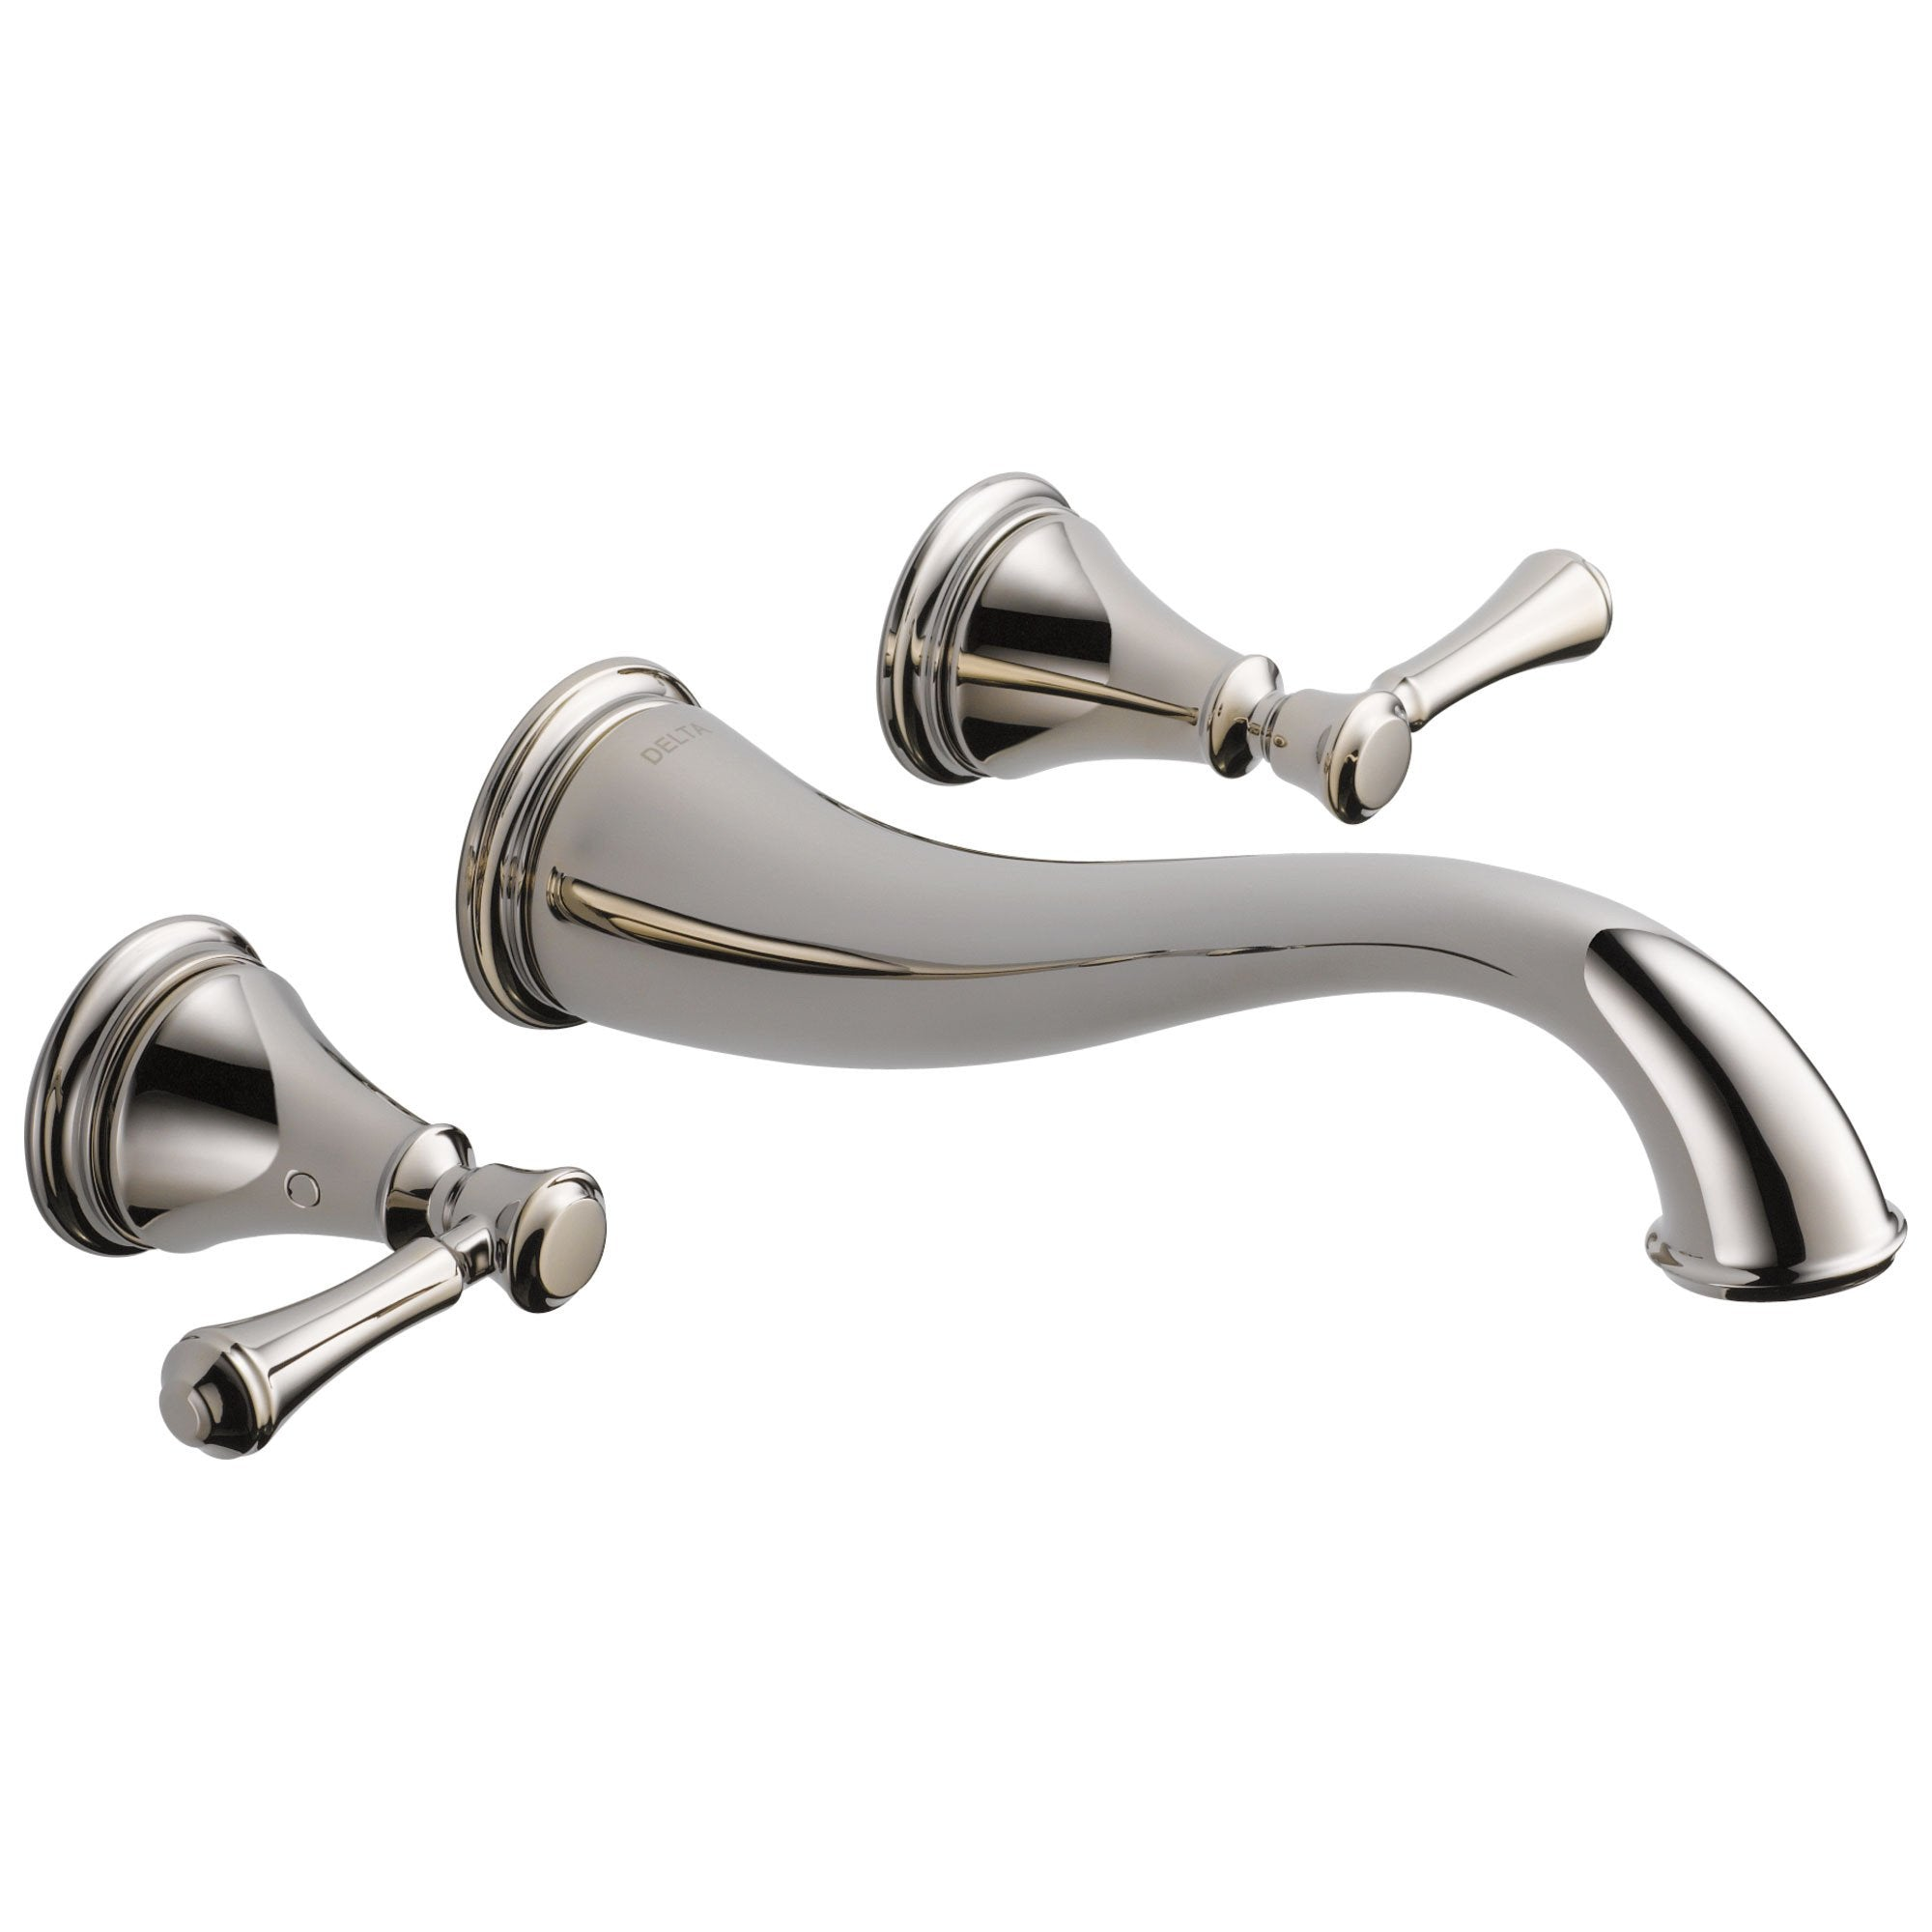 Delta Cassidy Collection Polished Nickel Traditional Style Two Handle Wall Mount Bathroom Sink Faucet Trim Kit (Requires Rough-in Valve) DT3597LFPNWL